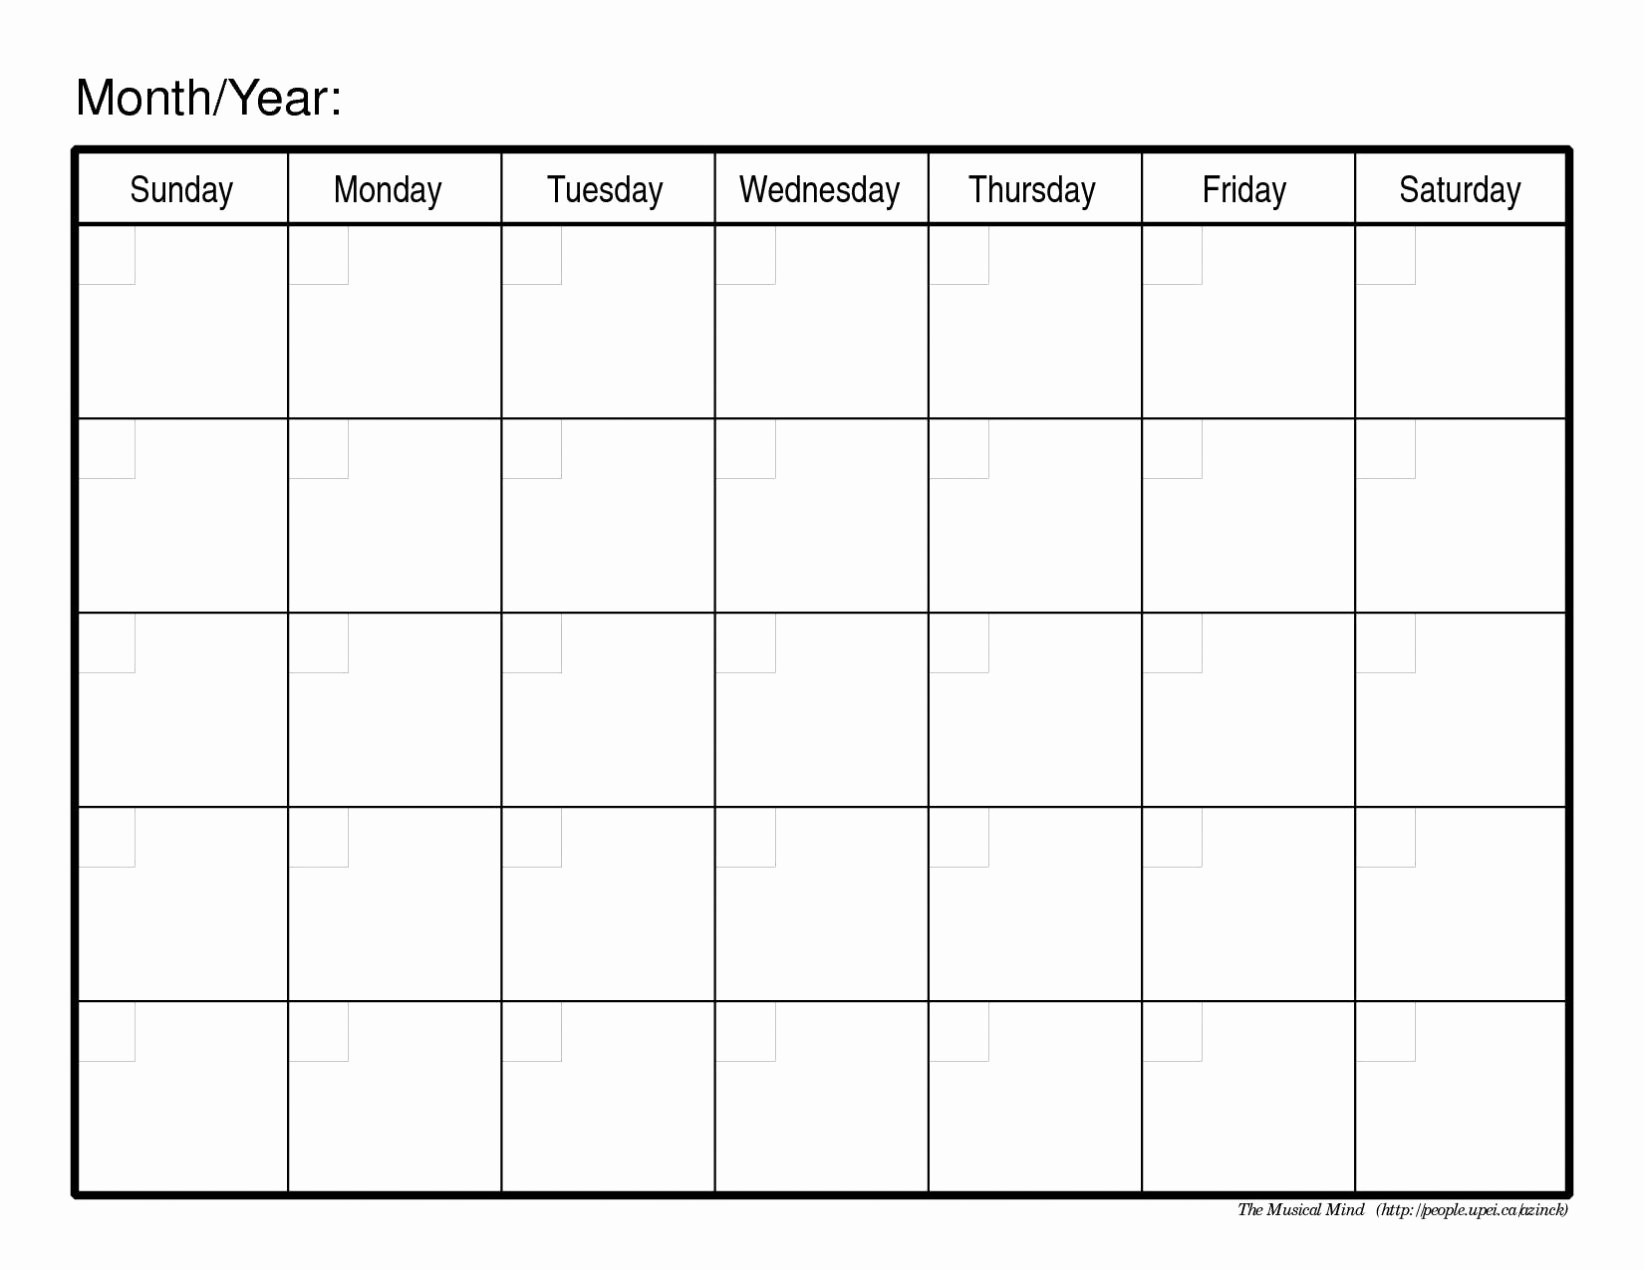 2017 Calendar Month by Month Fresh Printable Monthly Calendar 2017